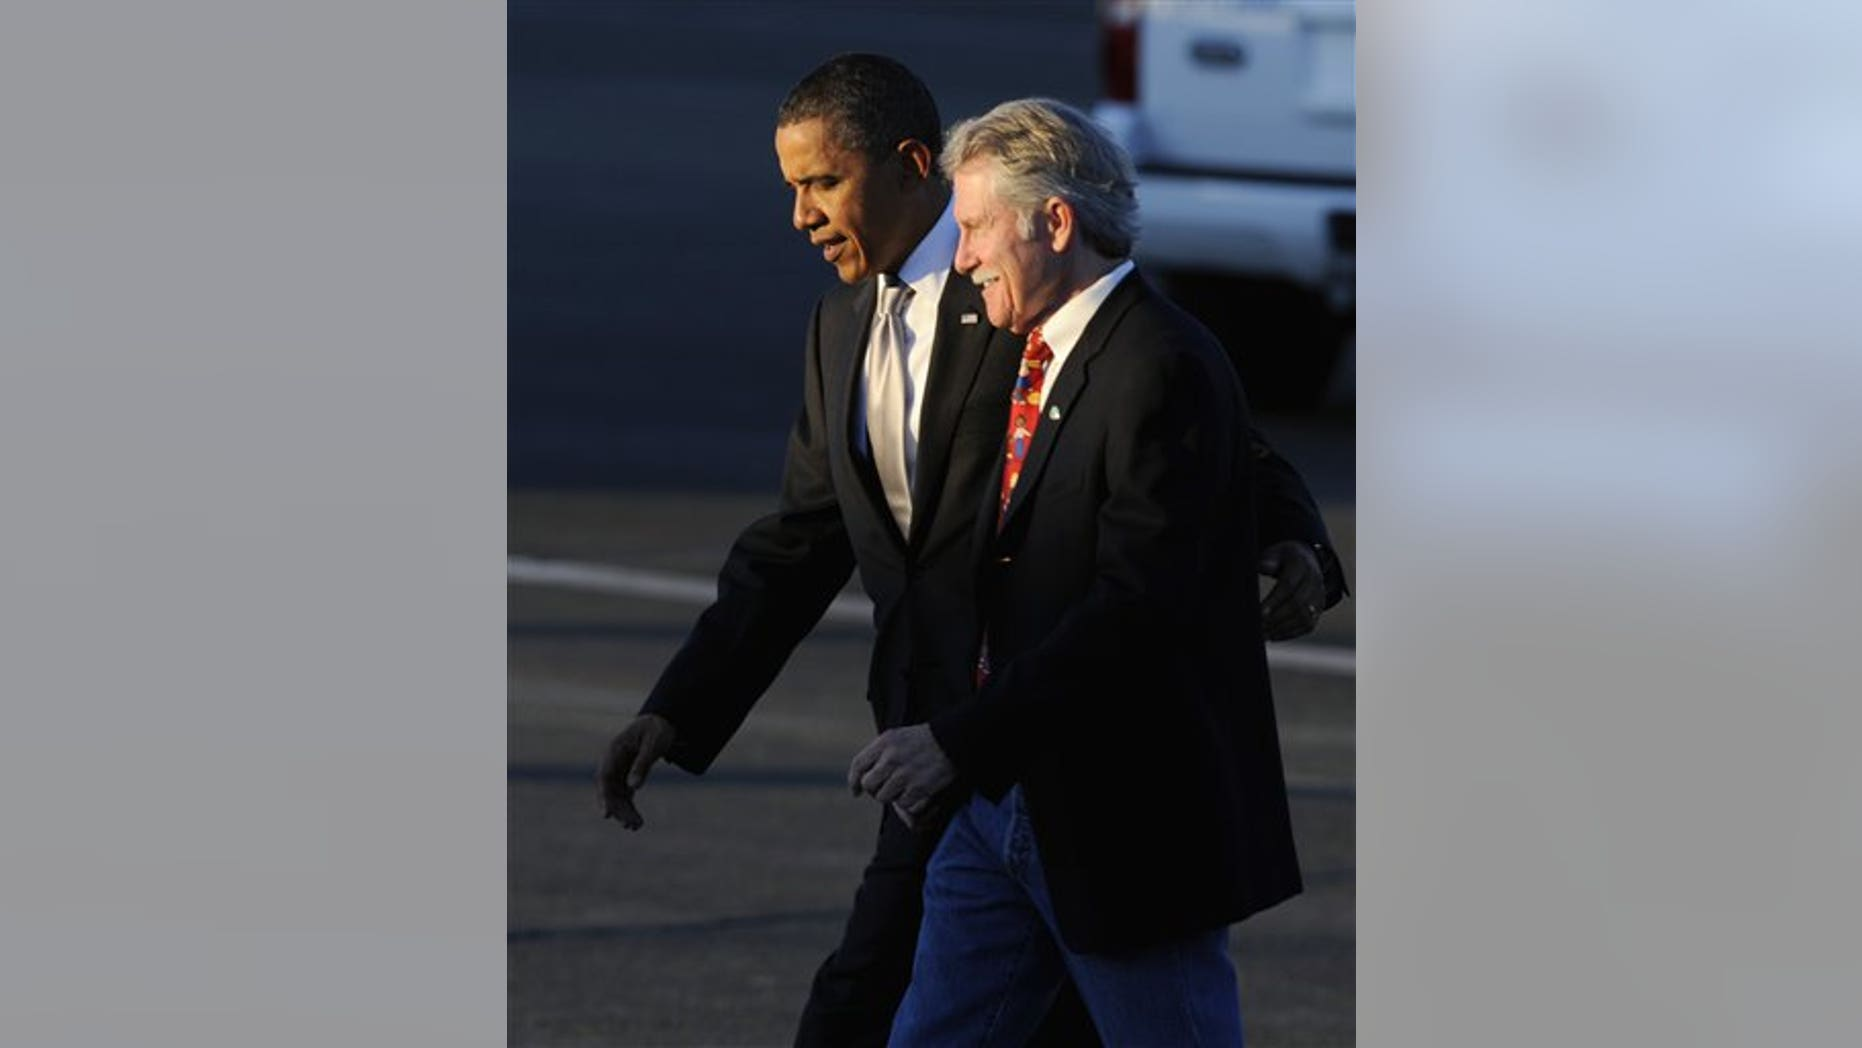 President Barack Obama walks with John Kitzhaber who is running for Oregon governor as he walks to greet supporters at Portland Air National Guard Base in Portland, Ore., Wednesday Oct 20, 2010. (AP Photo/Greg Wahl-Stephens)